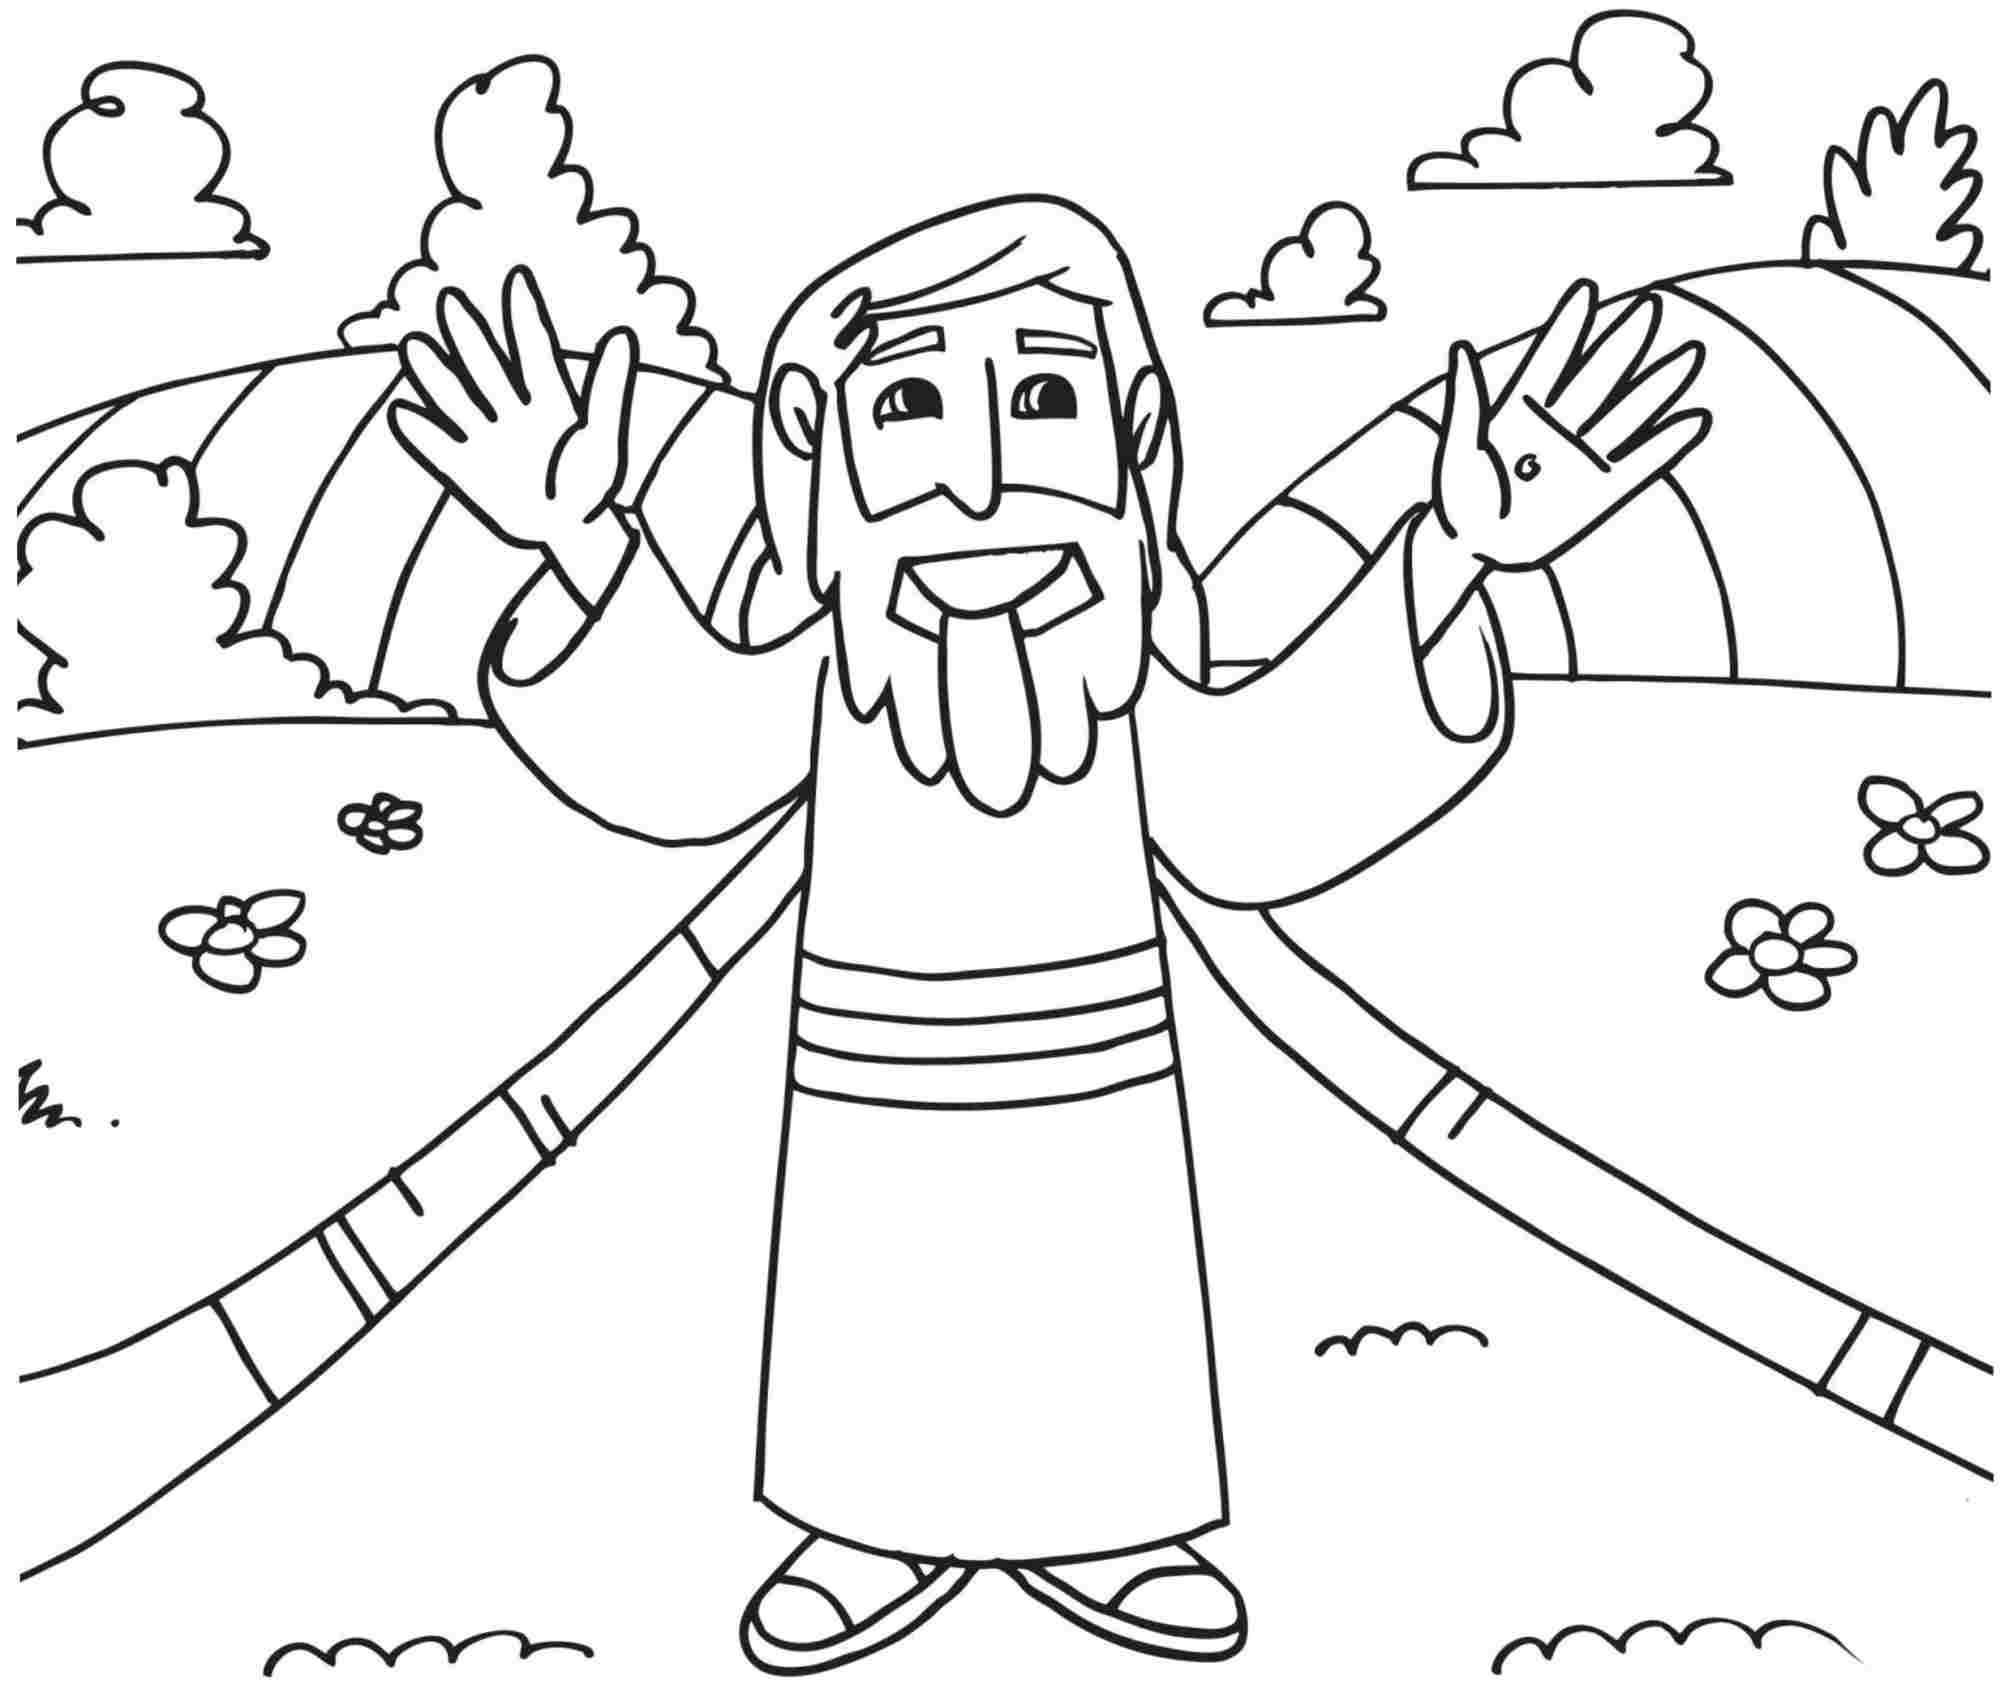 printable christian coloring pages free printable christian coloring pages for kids best pages printable christian coloring